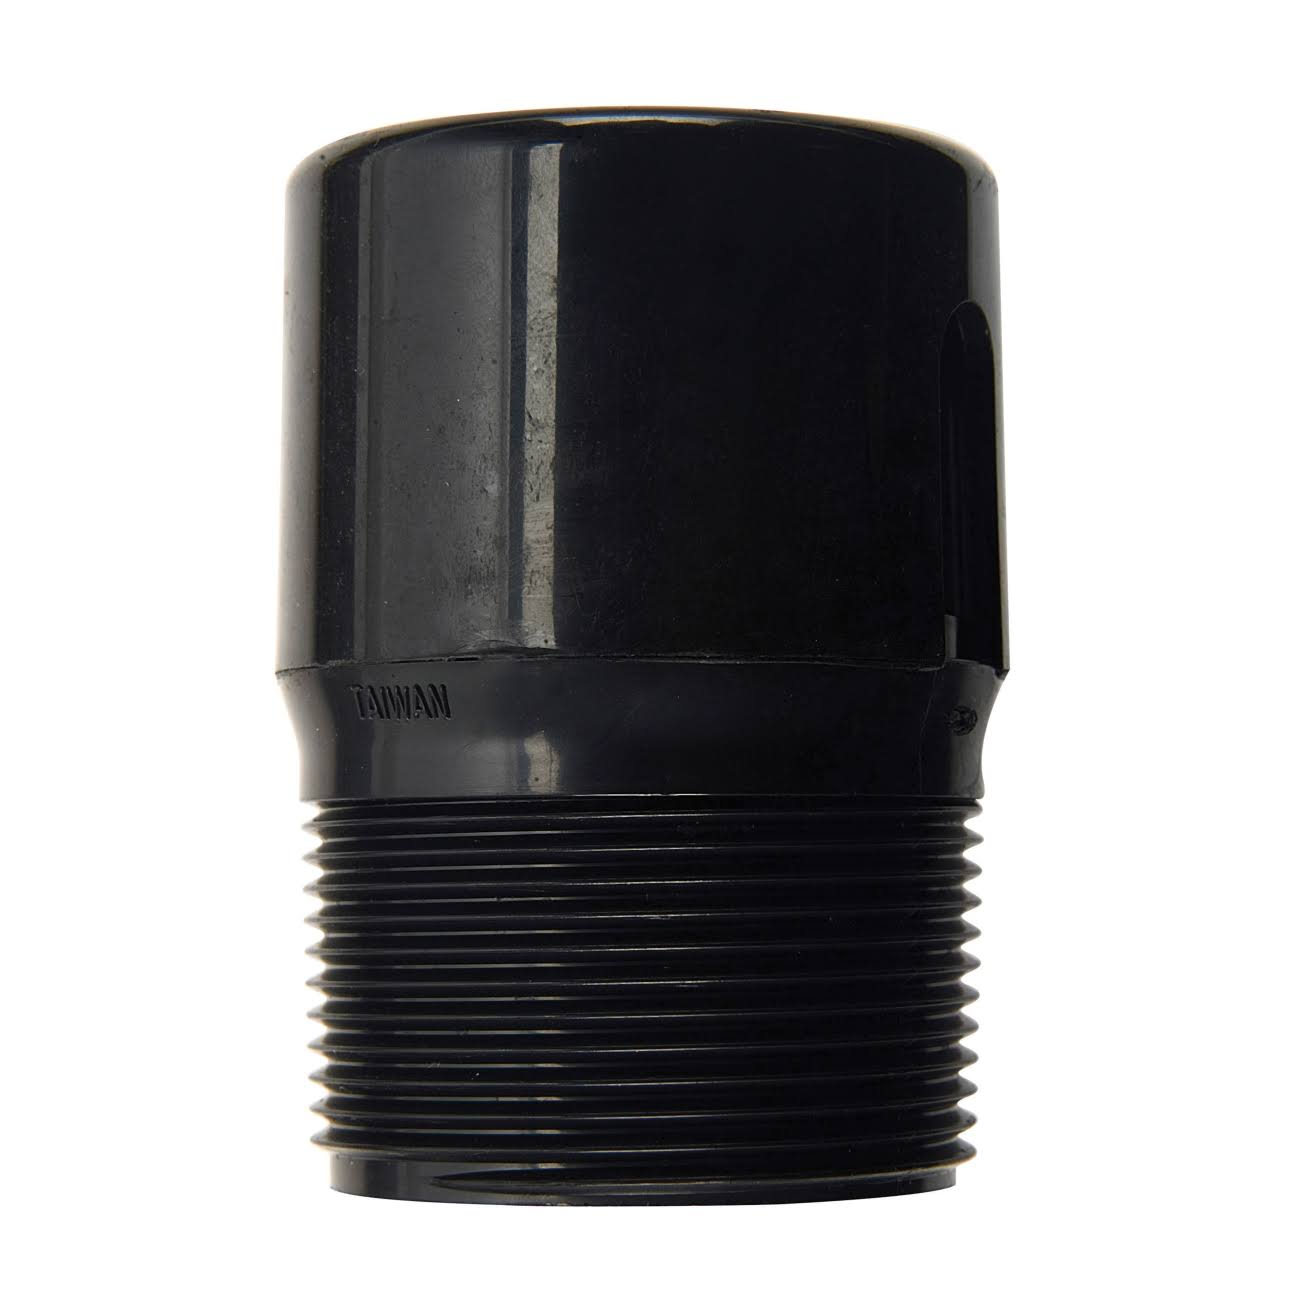 B and K Trap Vent - Black, 1.5""